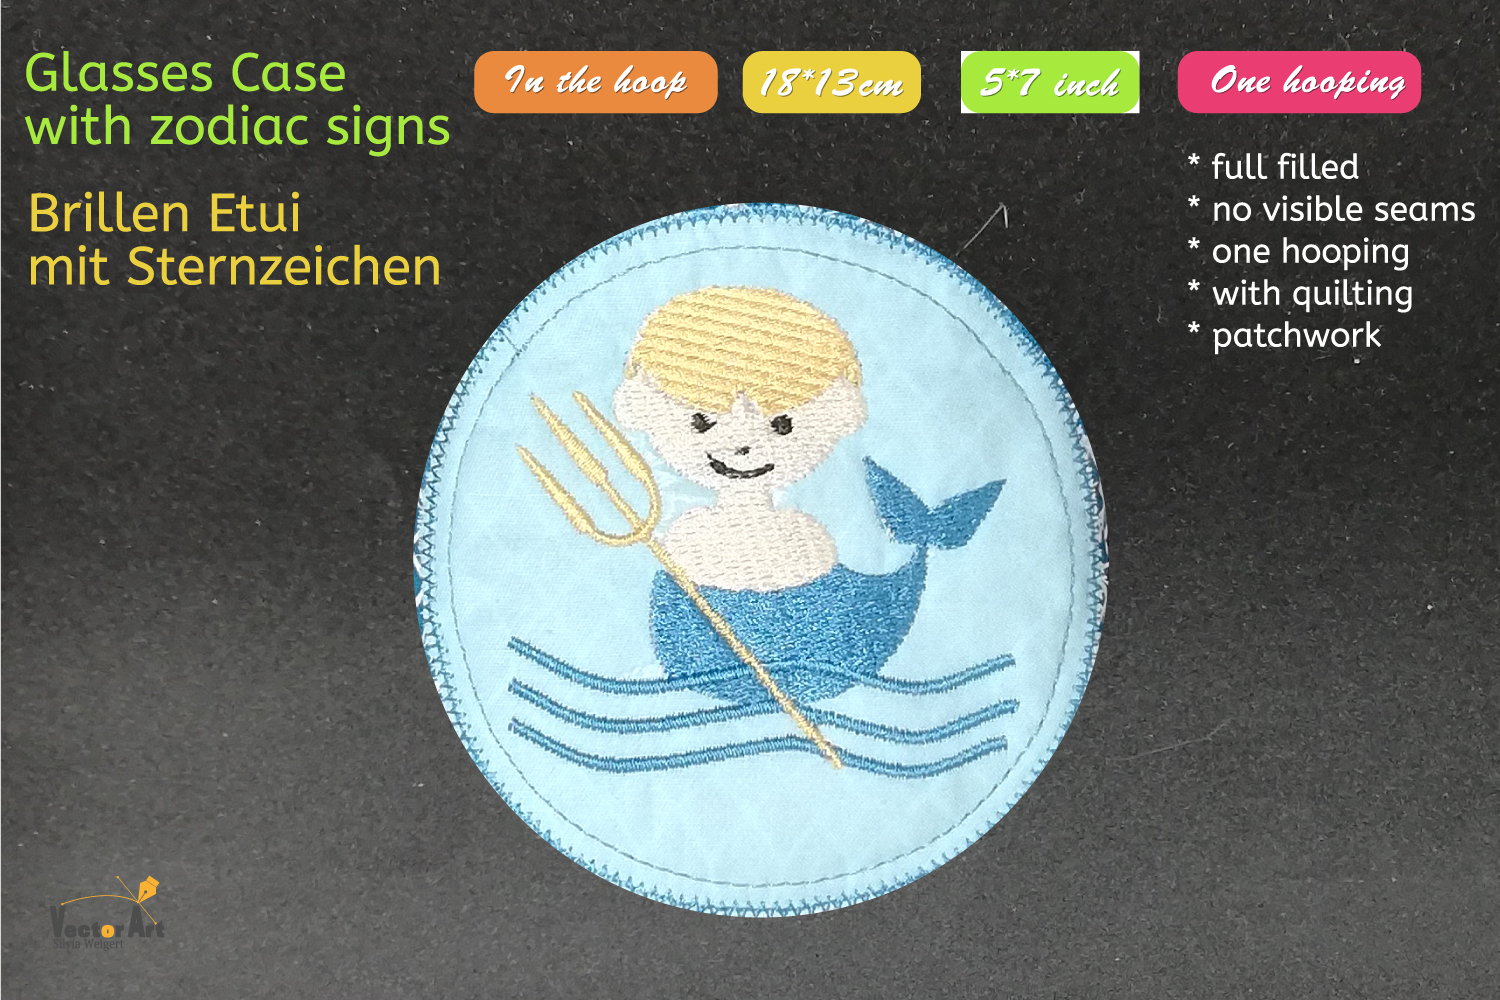 ITH - Glasses Case with Zodiac Aquarius - Embroidery file example image 4